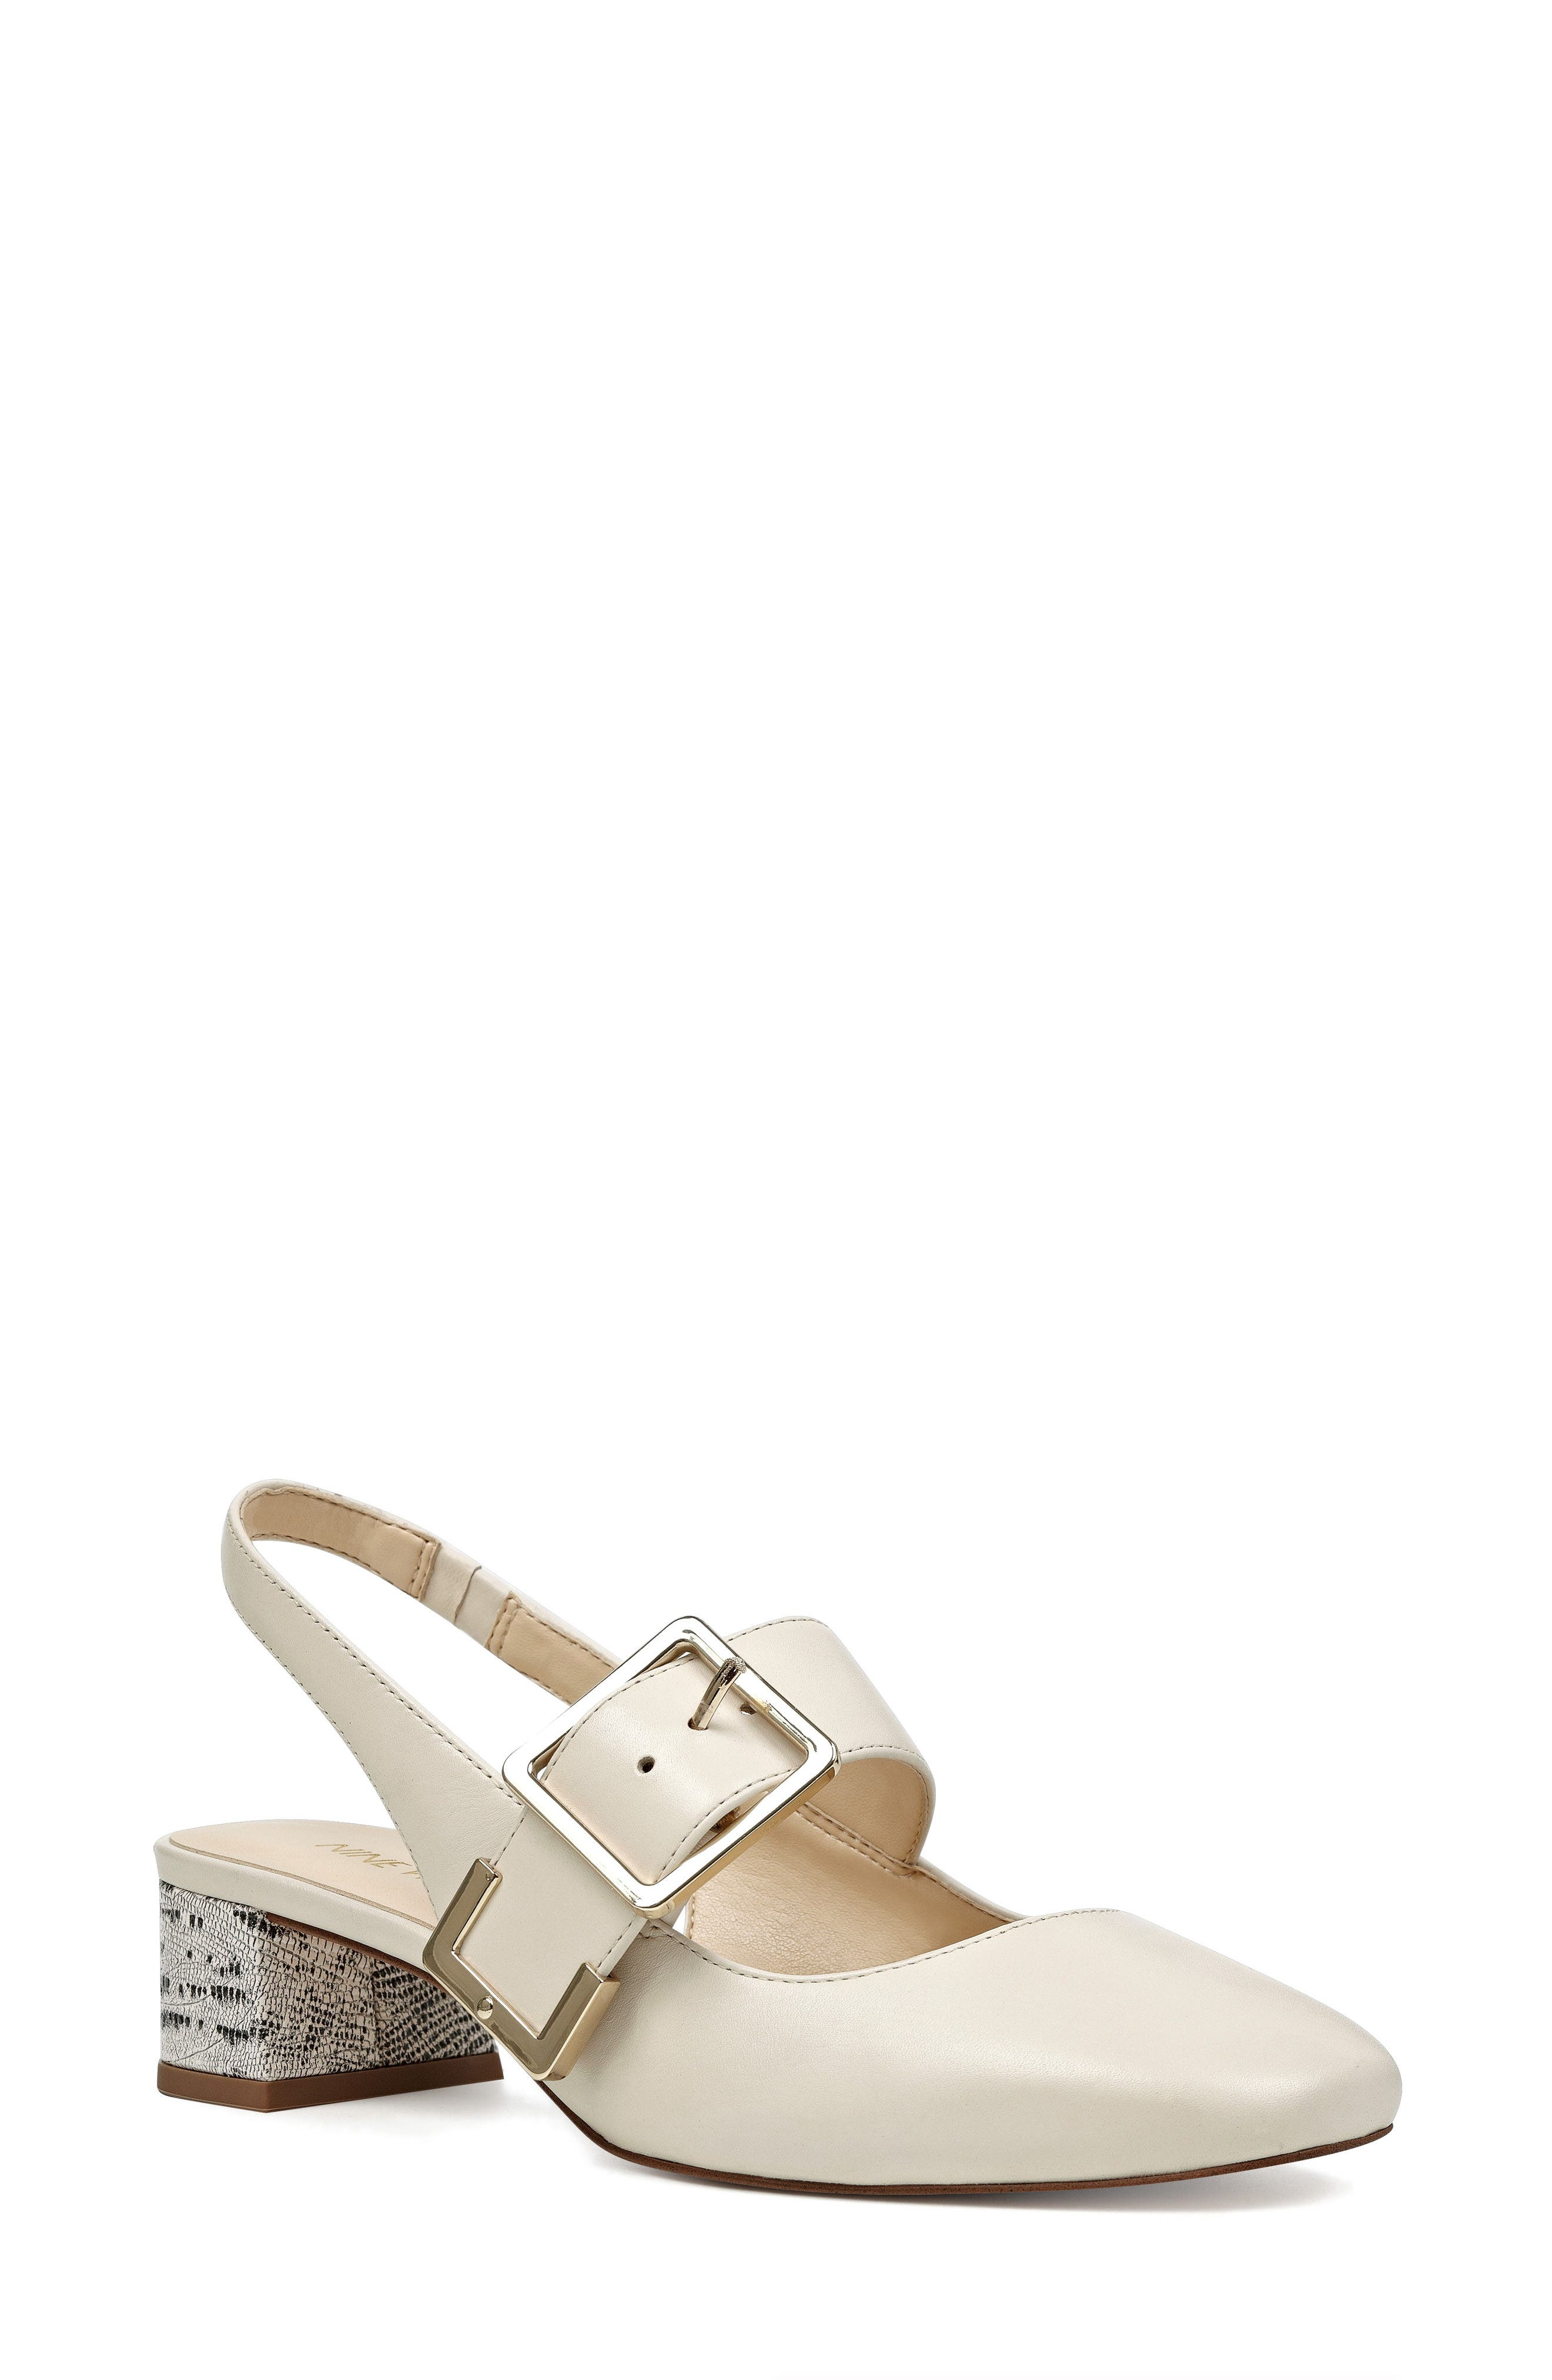 Wendor Slingback Pump,                             Main thumbnail 1, color,                             Off White Leather